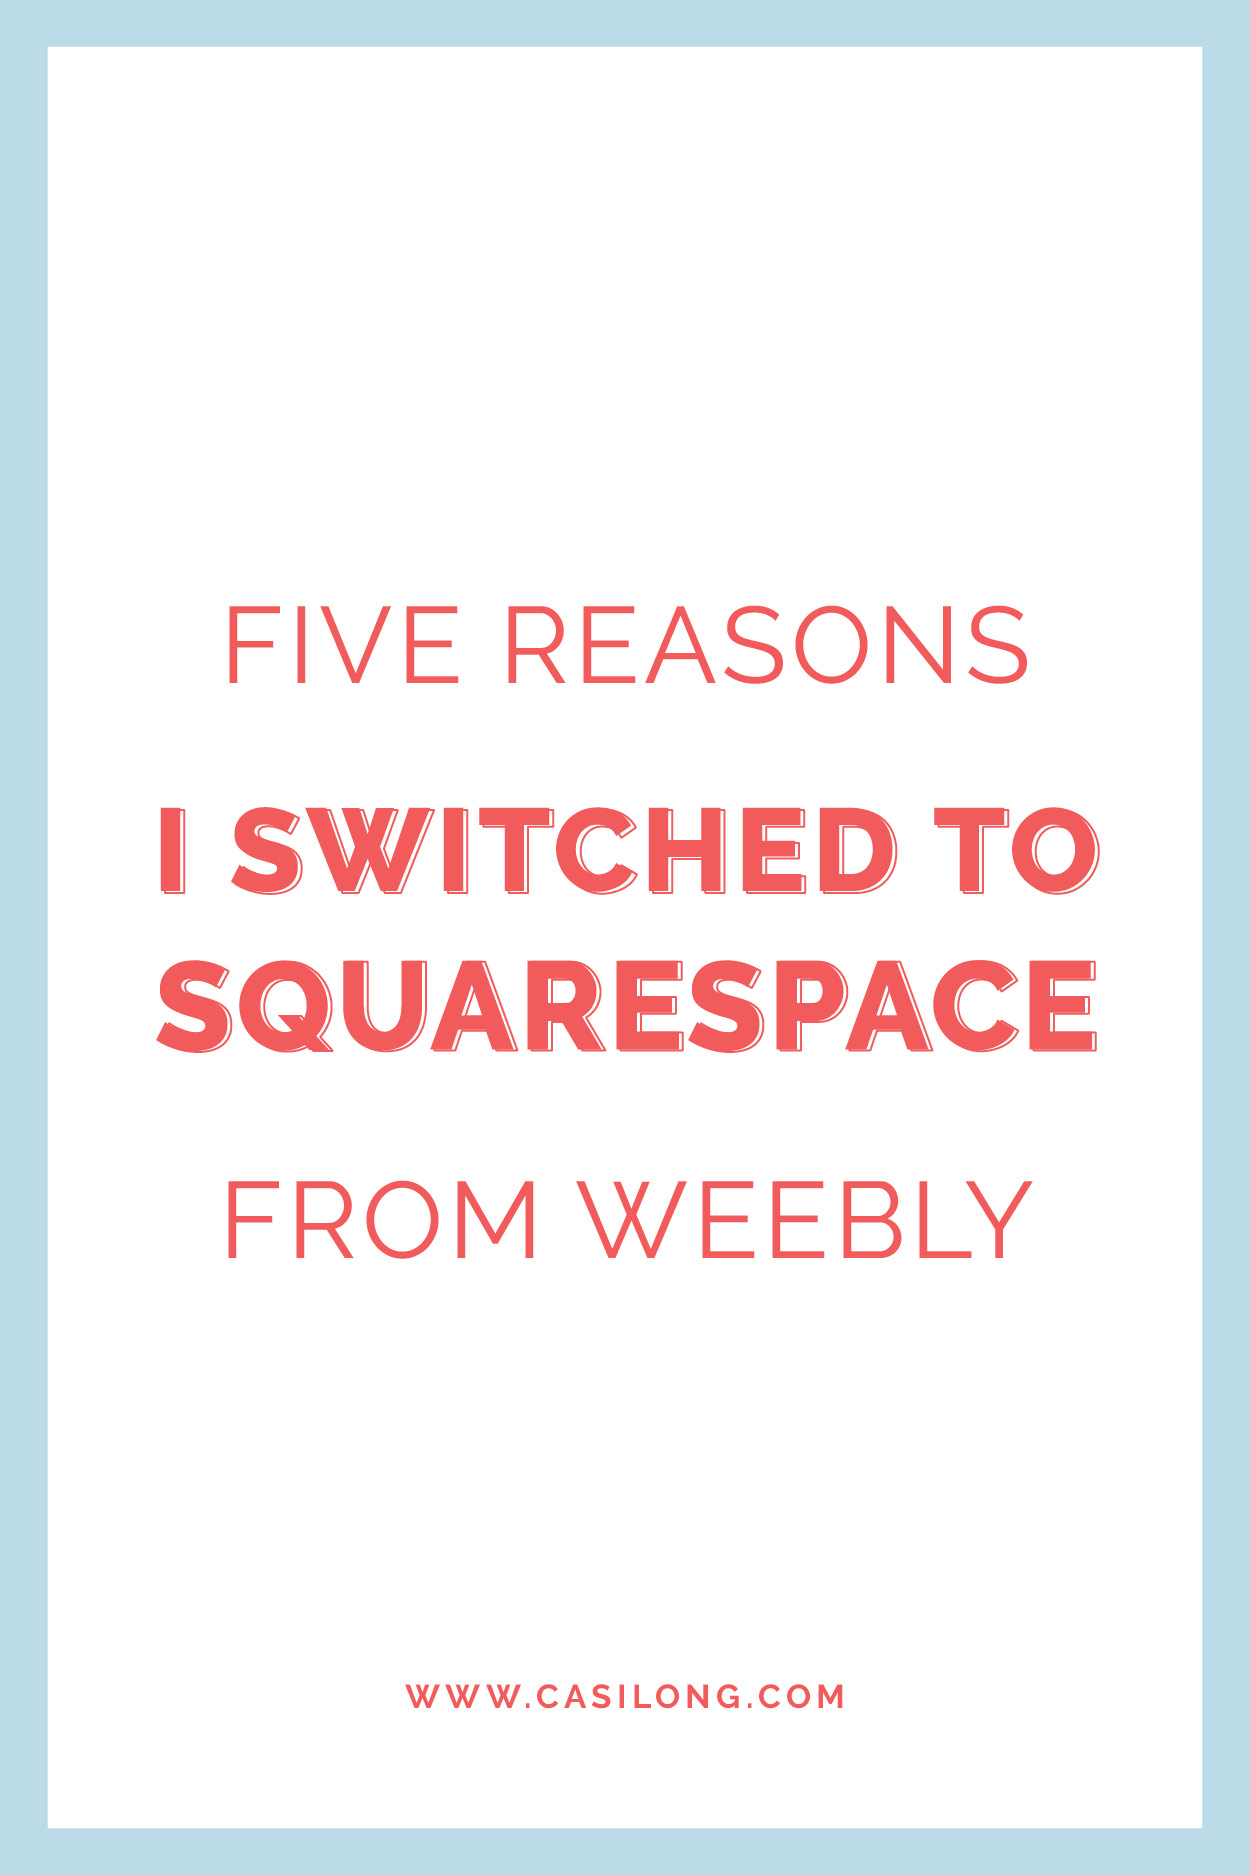 Five reasons I switched to Squarespace from Weebly. I recently switched my website over to Squarespace and couldn't be happier. Read why over on the blog casilong.com/blog/fivereasons | #casilongdesign #fearlesspursuit